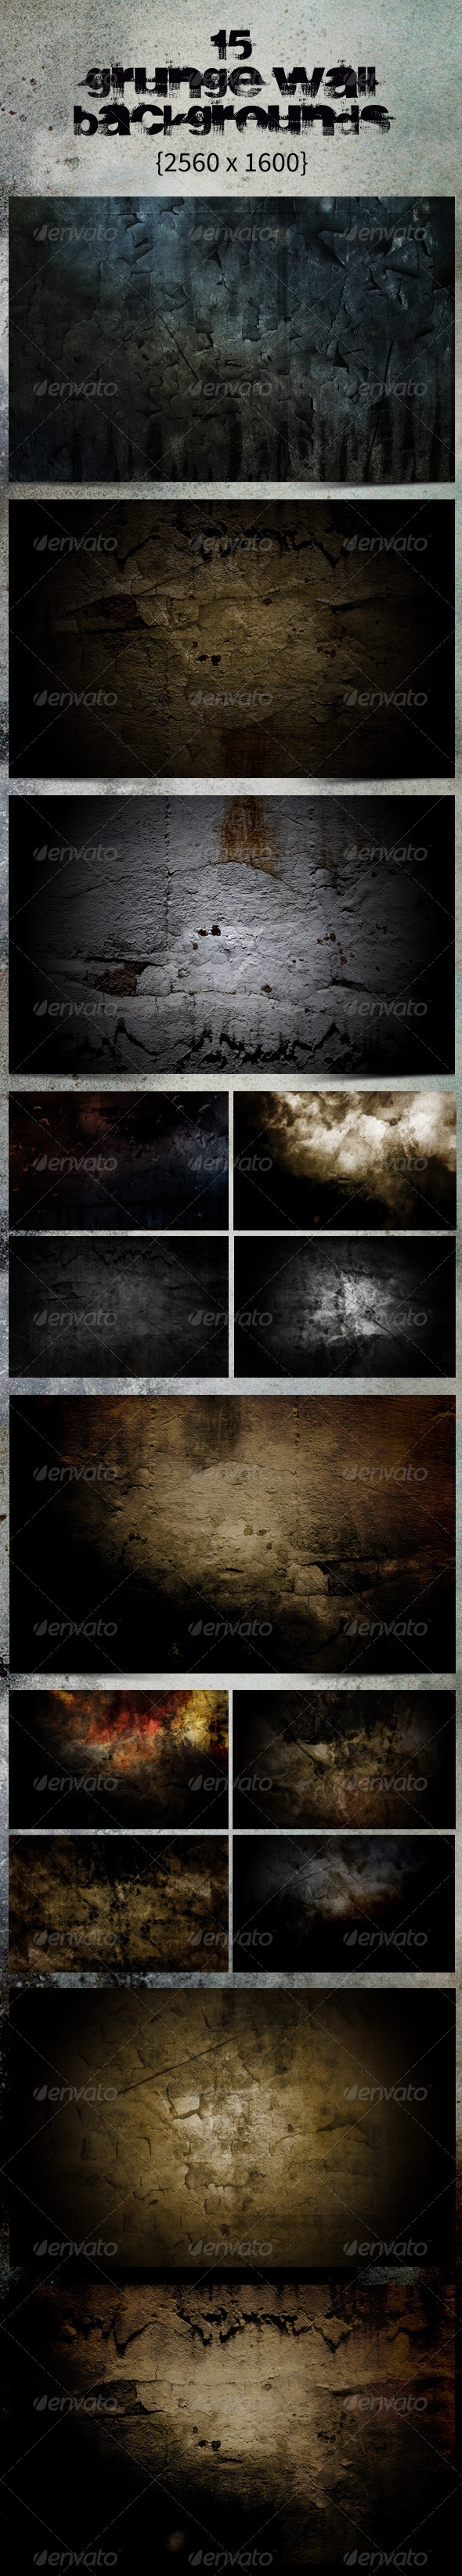 15 Grunge Wall Backgrounds - Urban Decay - Urban Backgrounds